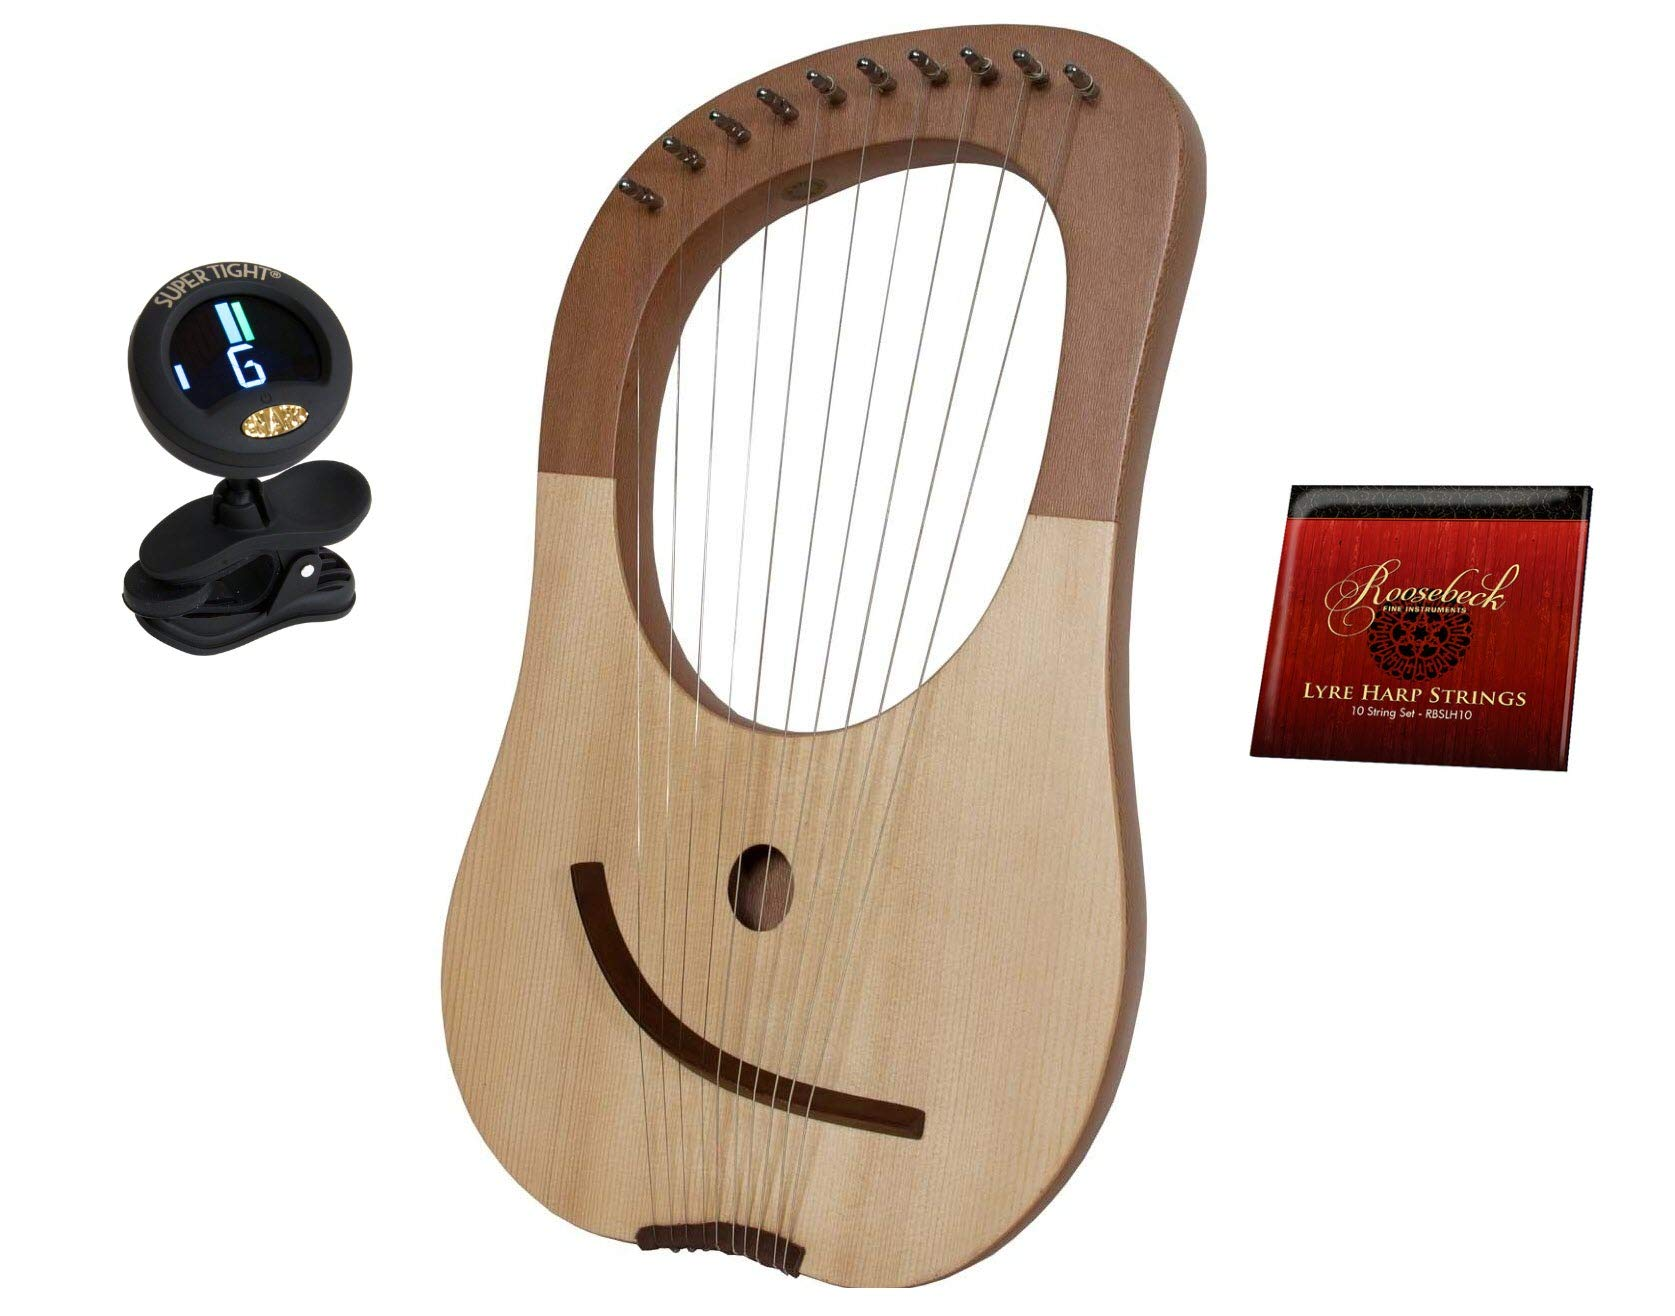 Lyre Harp Biblical King Davids Solid Spruce W/Tuning Tool + 10-String Lyre Harp Replacement Extra Strings - Steel & Nickel Wound + Snark Clip-On Chromatic Tuner by Mid-East